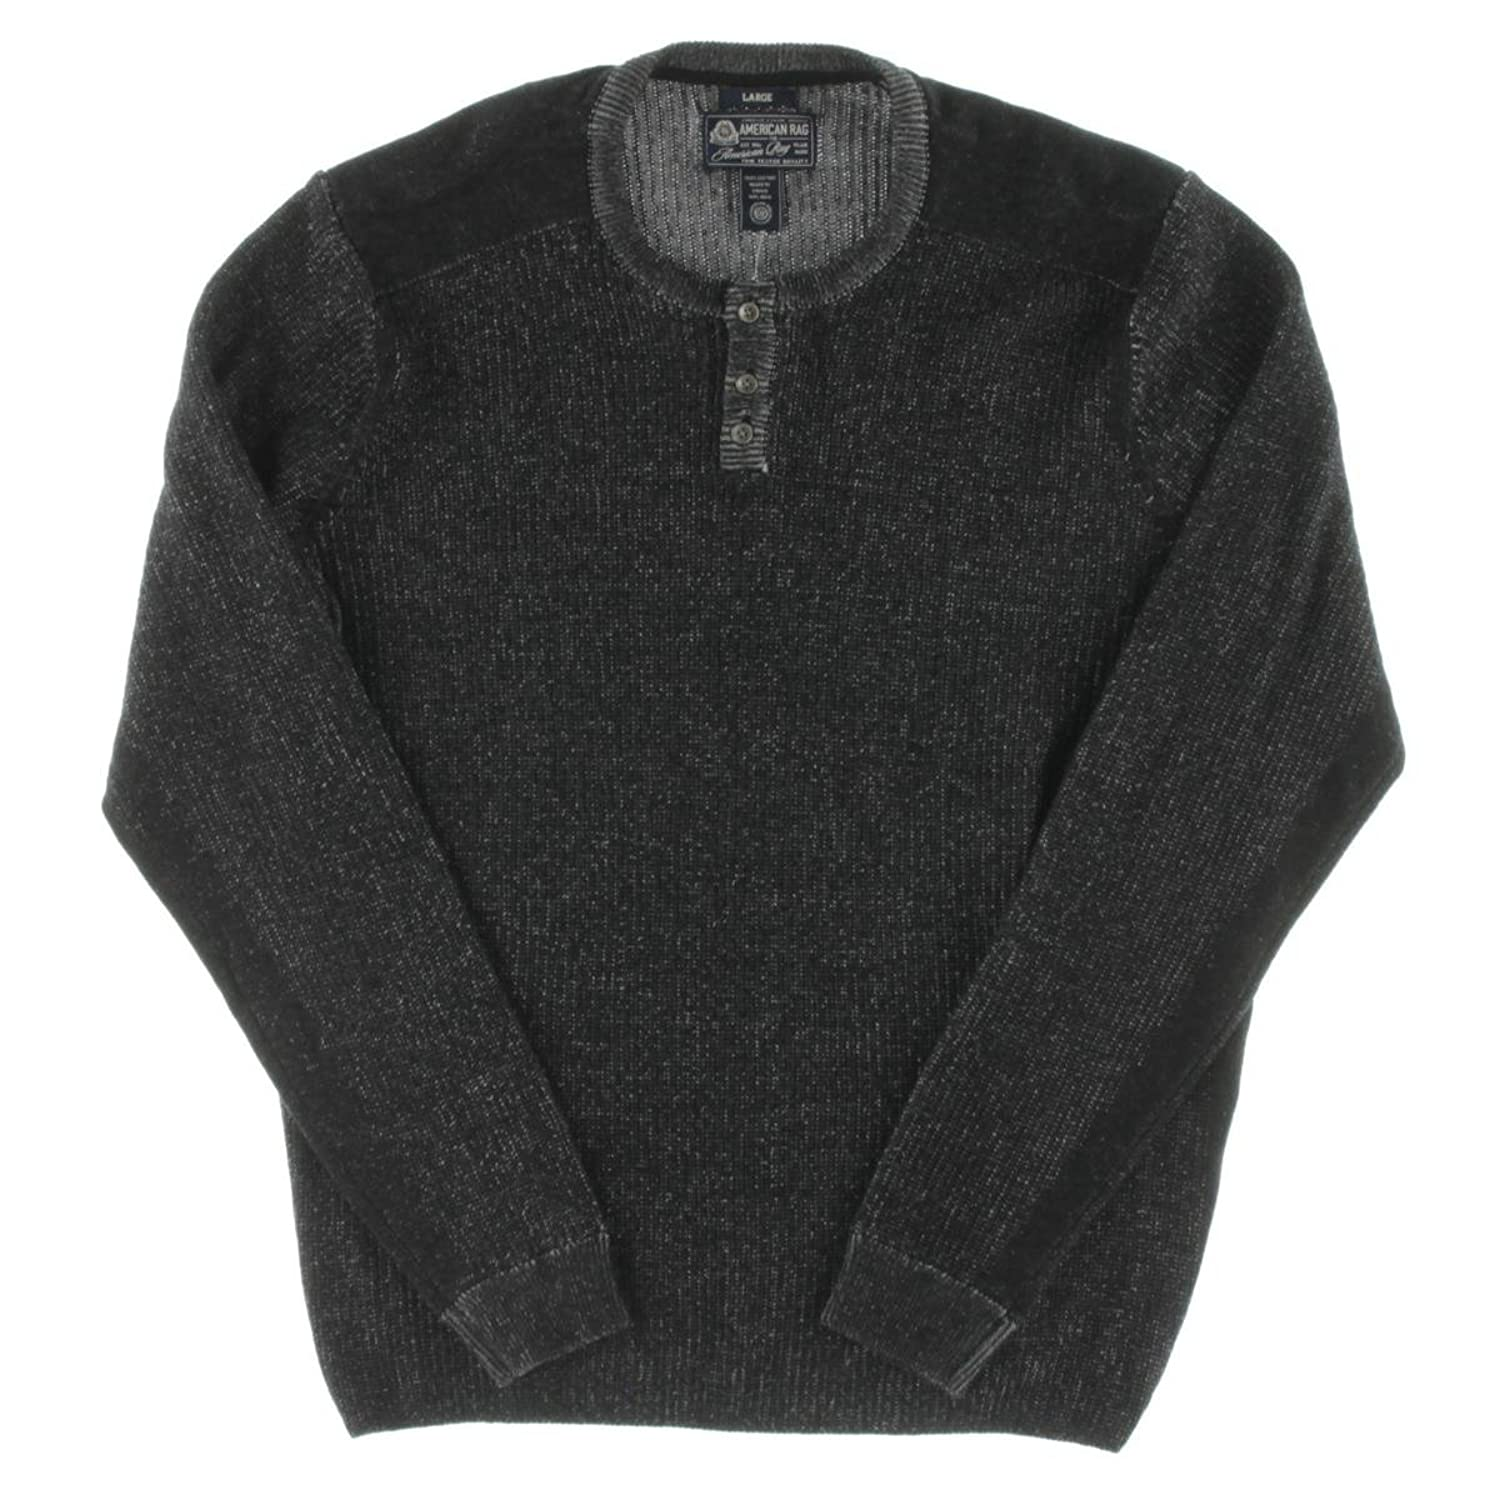 ARTFFEL Mens Casual Long Sleeve Round Neck Knitted Color Block Basic Pullover Sweater